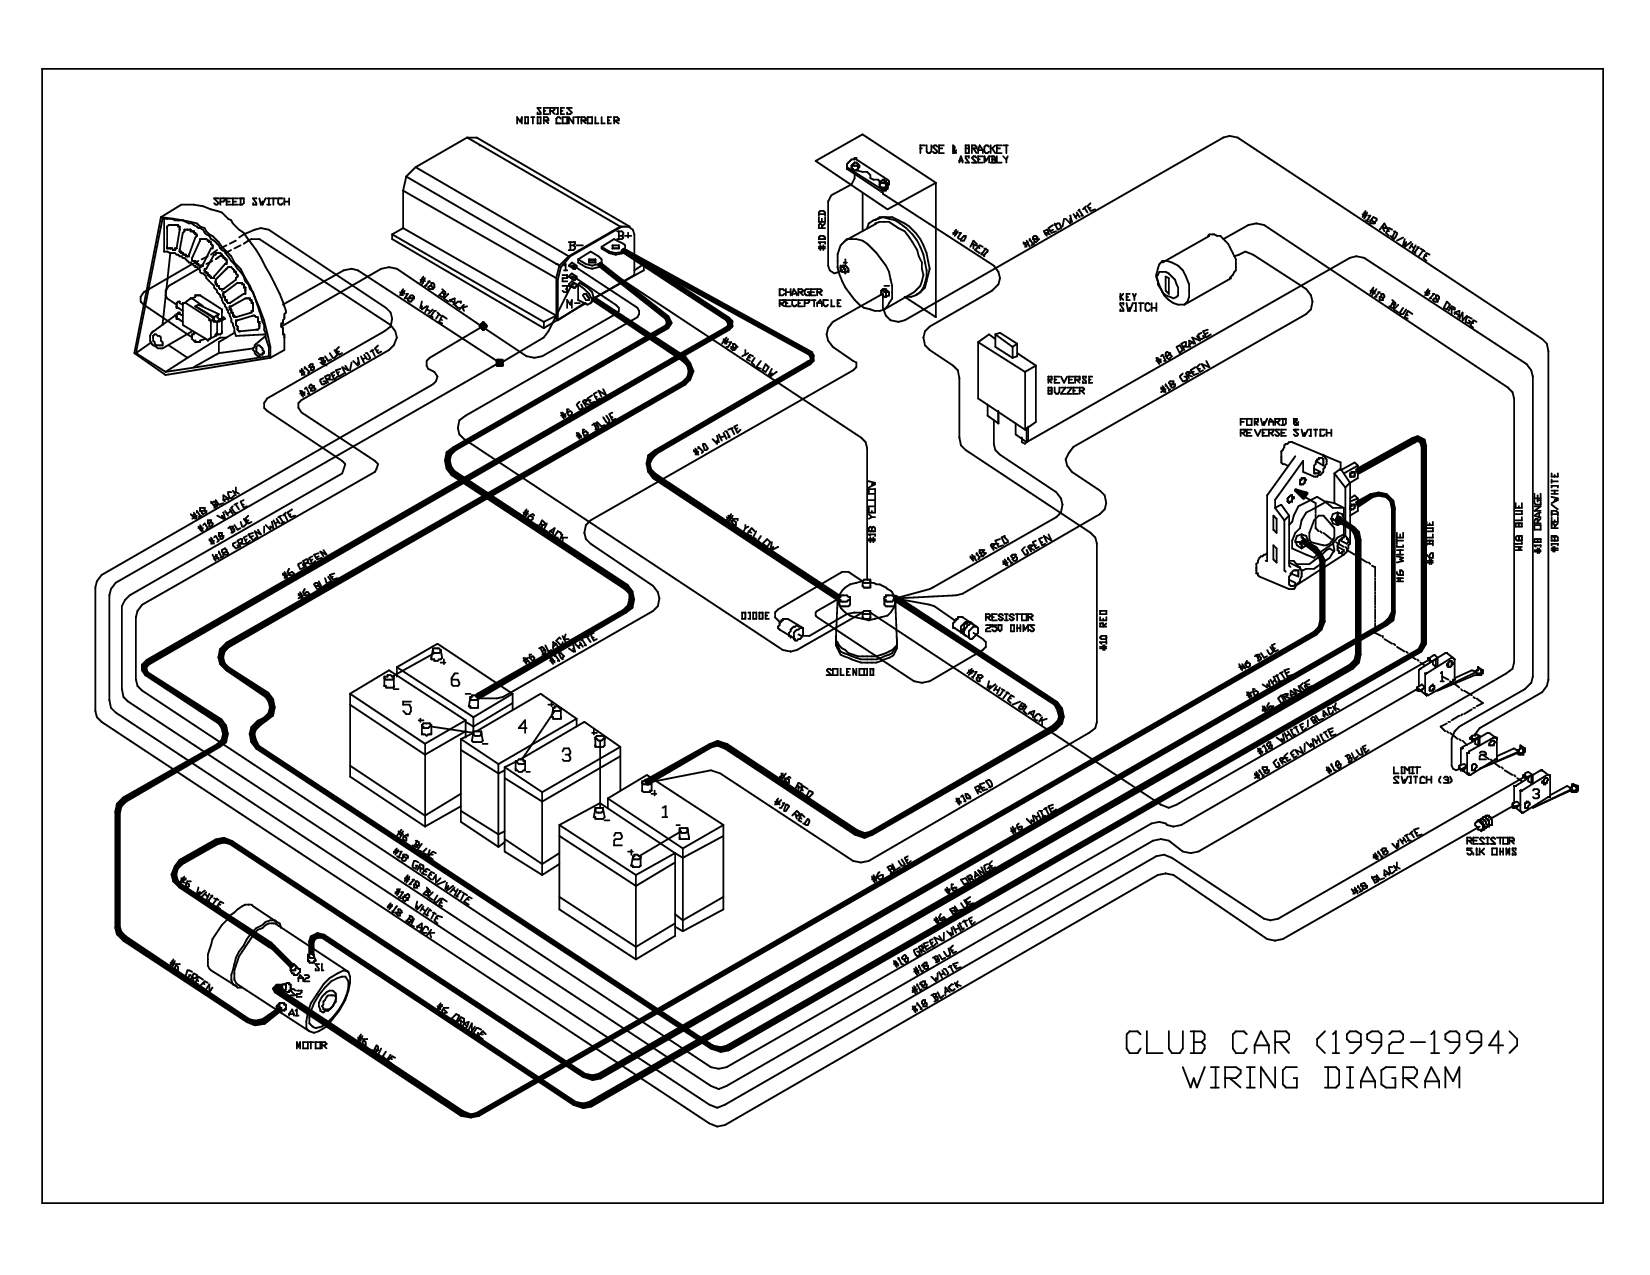 f6c561ac444229e87339c7e65e18cc68 1992 club car wiring diagram 1992 harley davidson wiring diagram 97 club car wiring diagram at bayanpartner.co